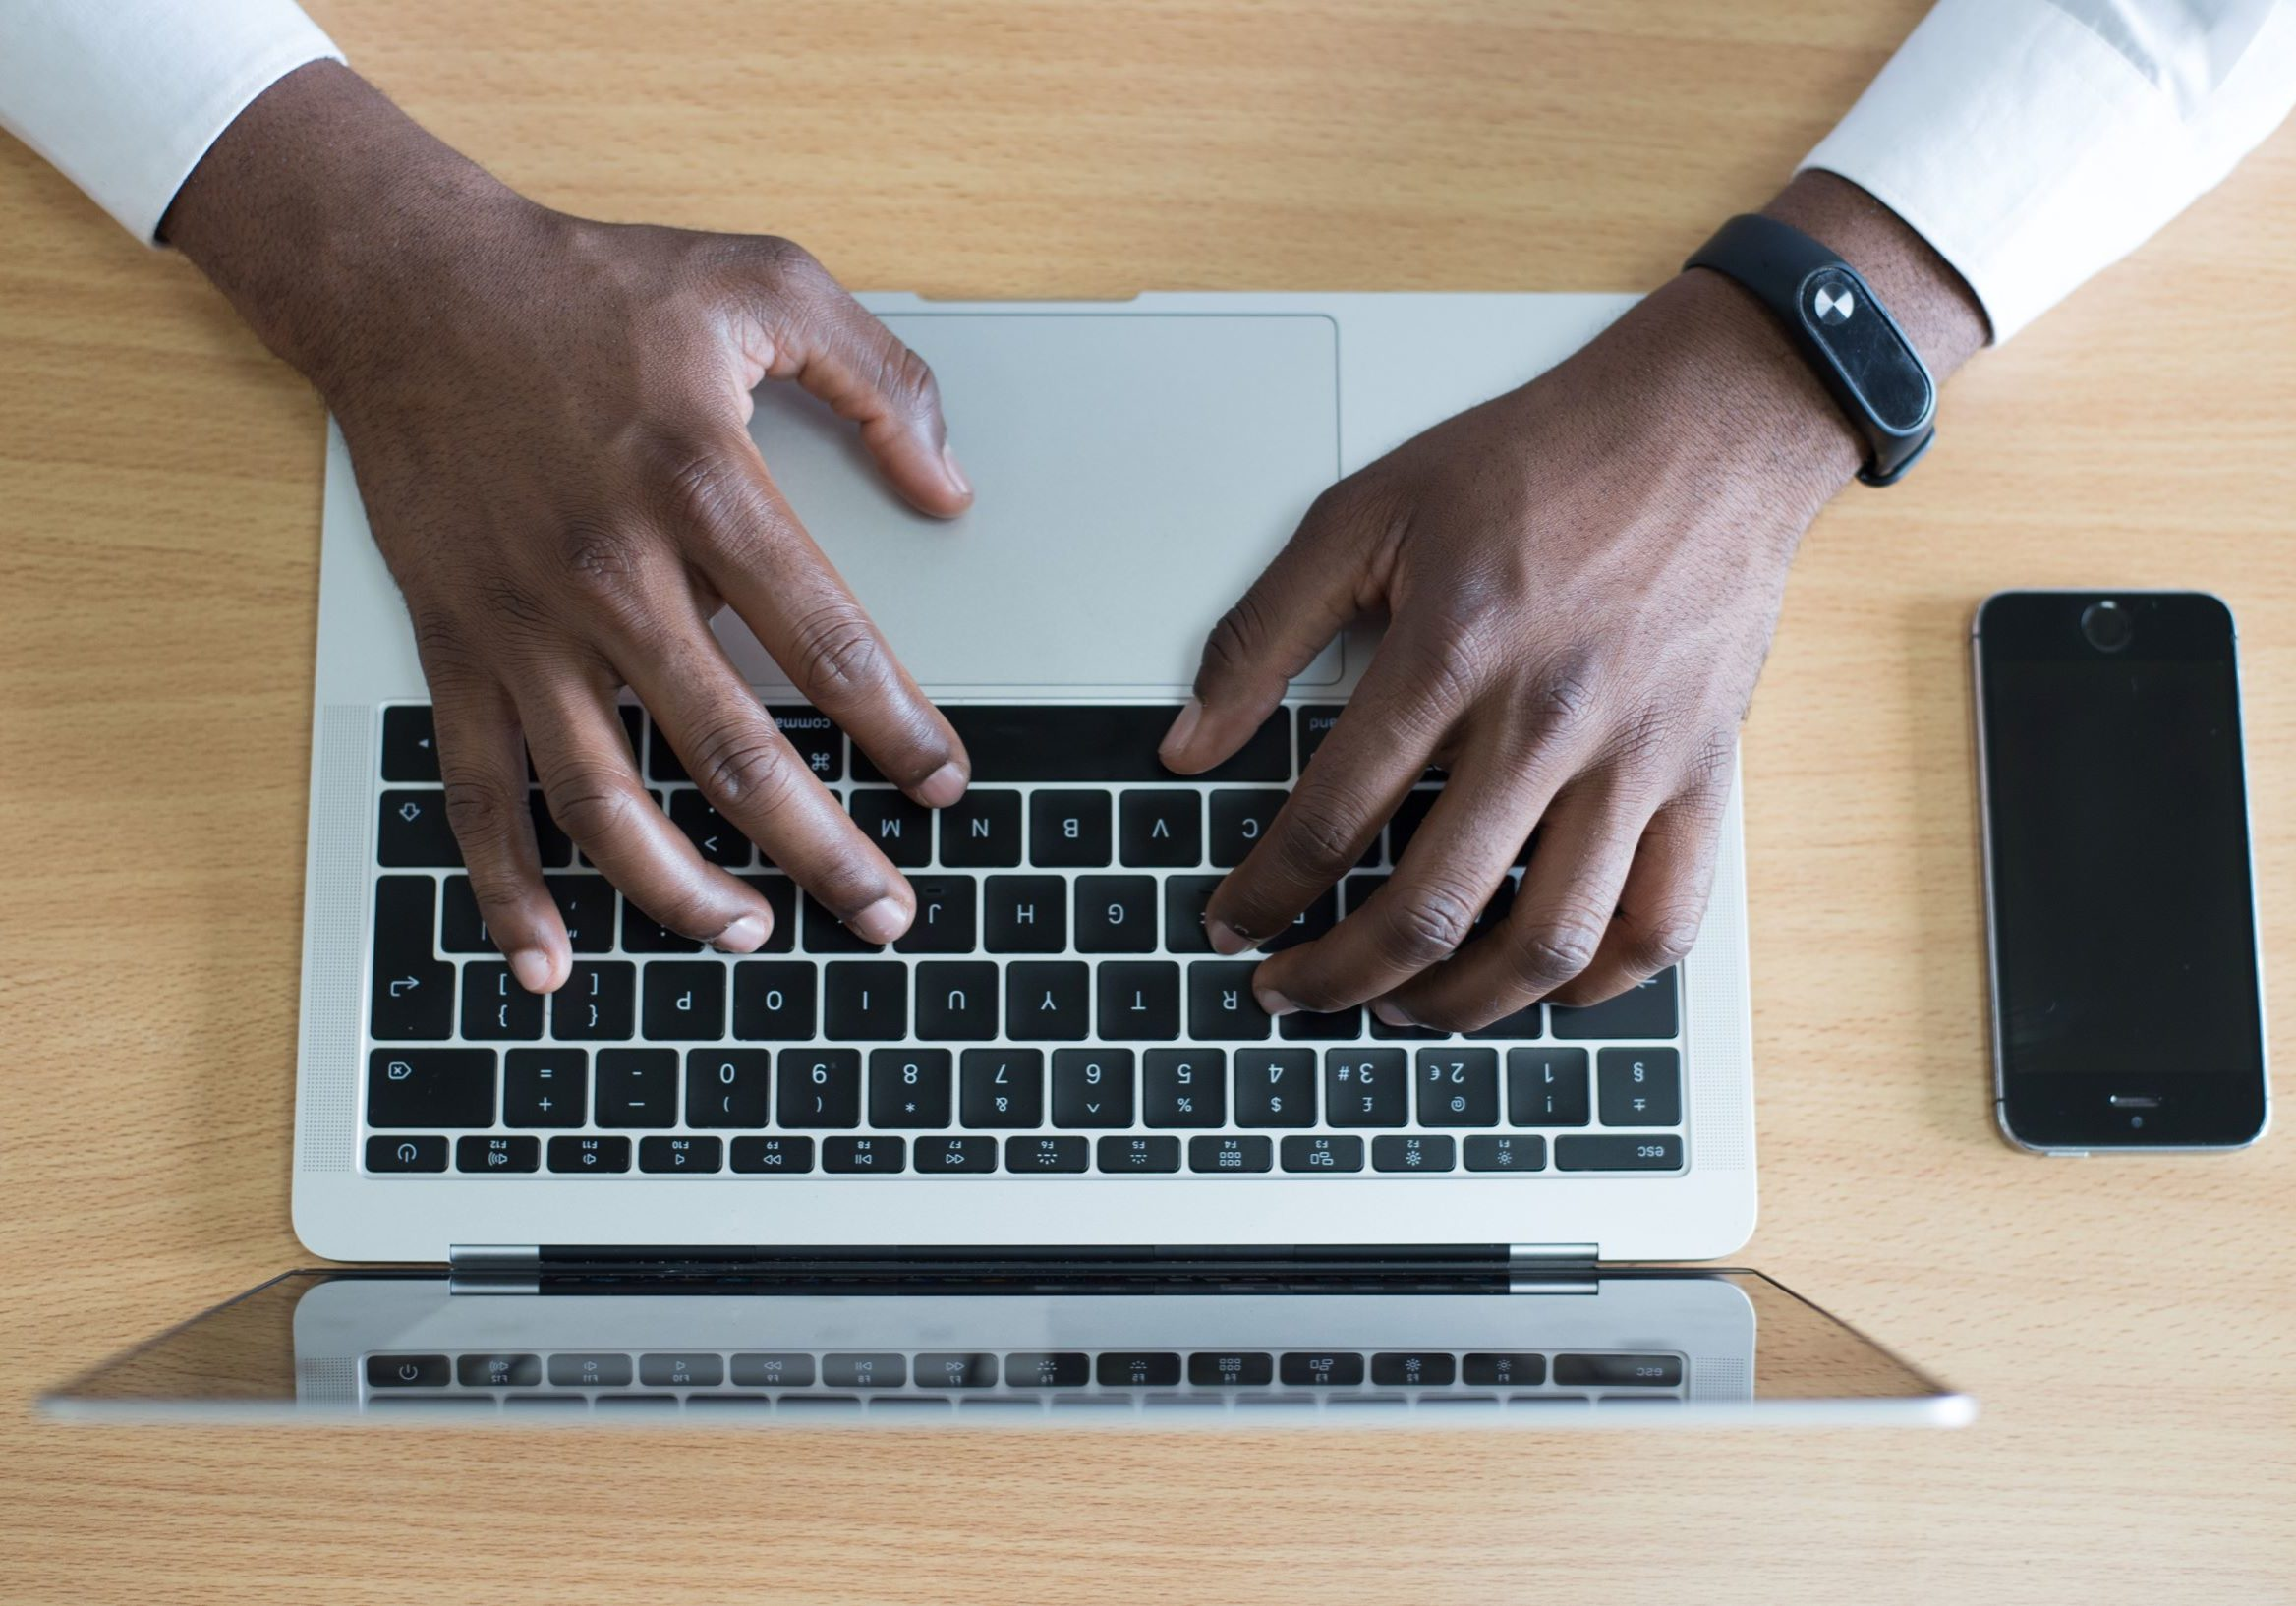 closeup-photo-of-person-s-hands-on-macbook-beside-space-gray-955402 (2)_resized